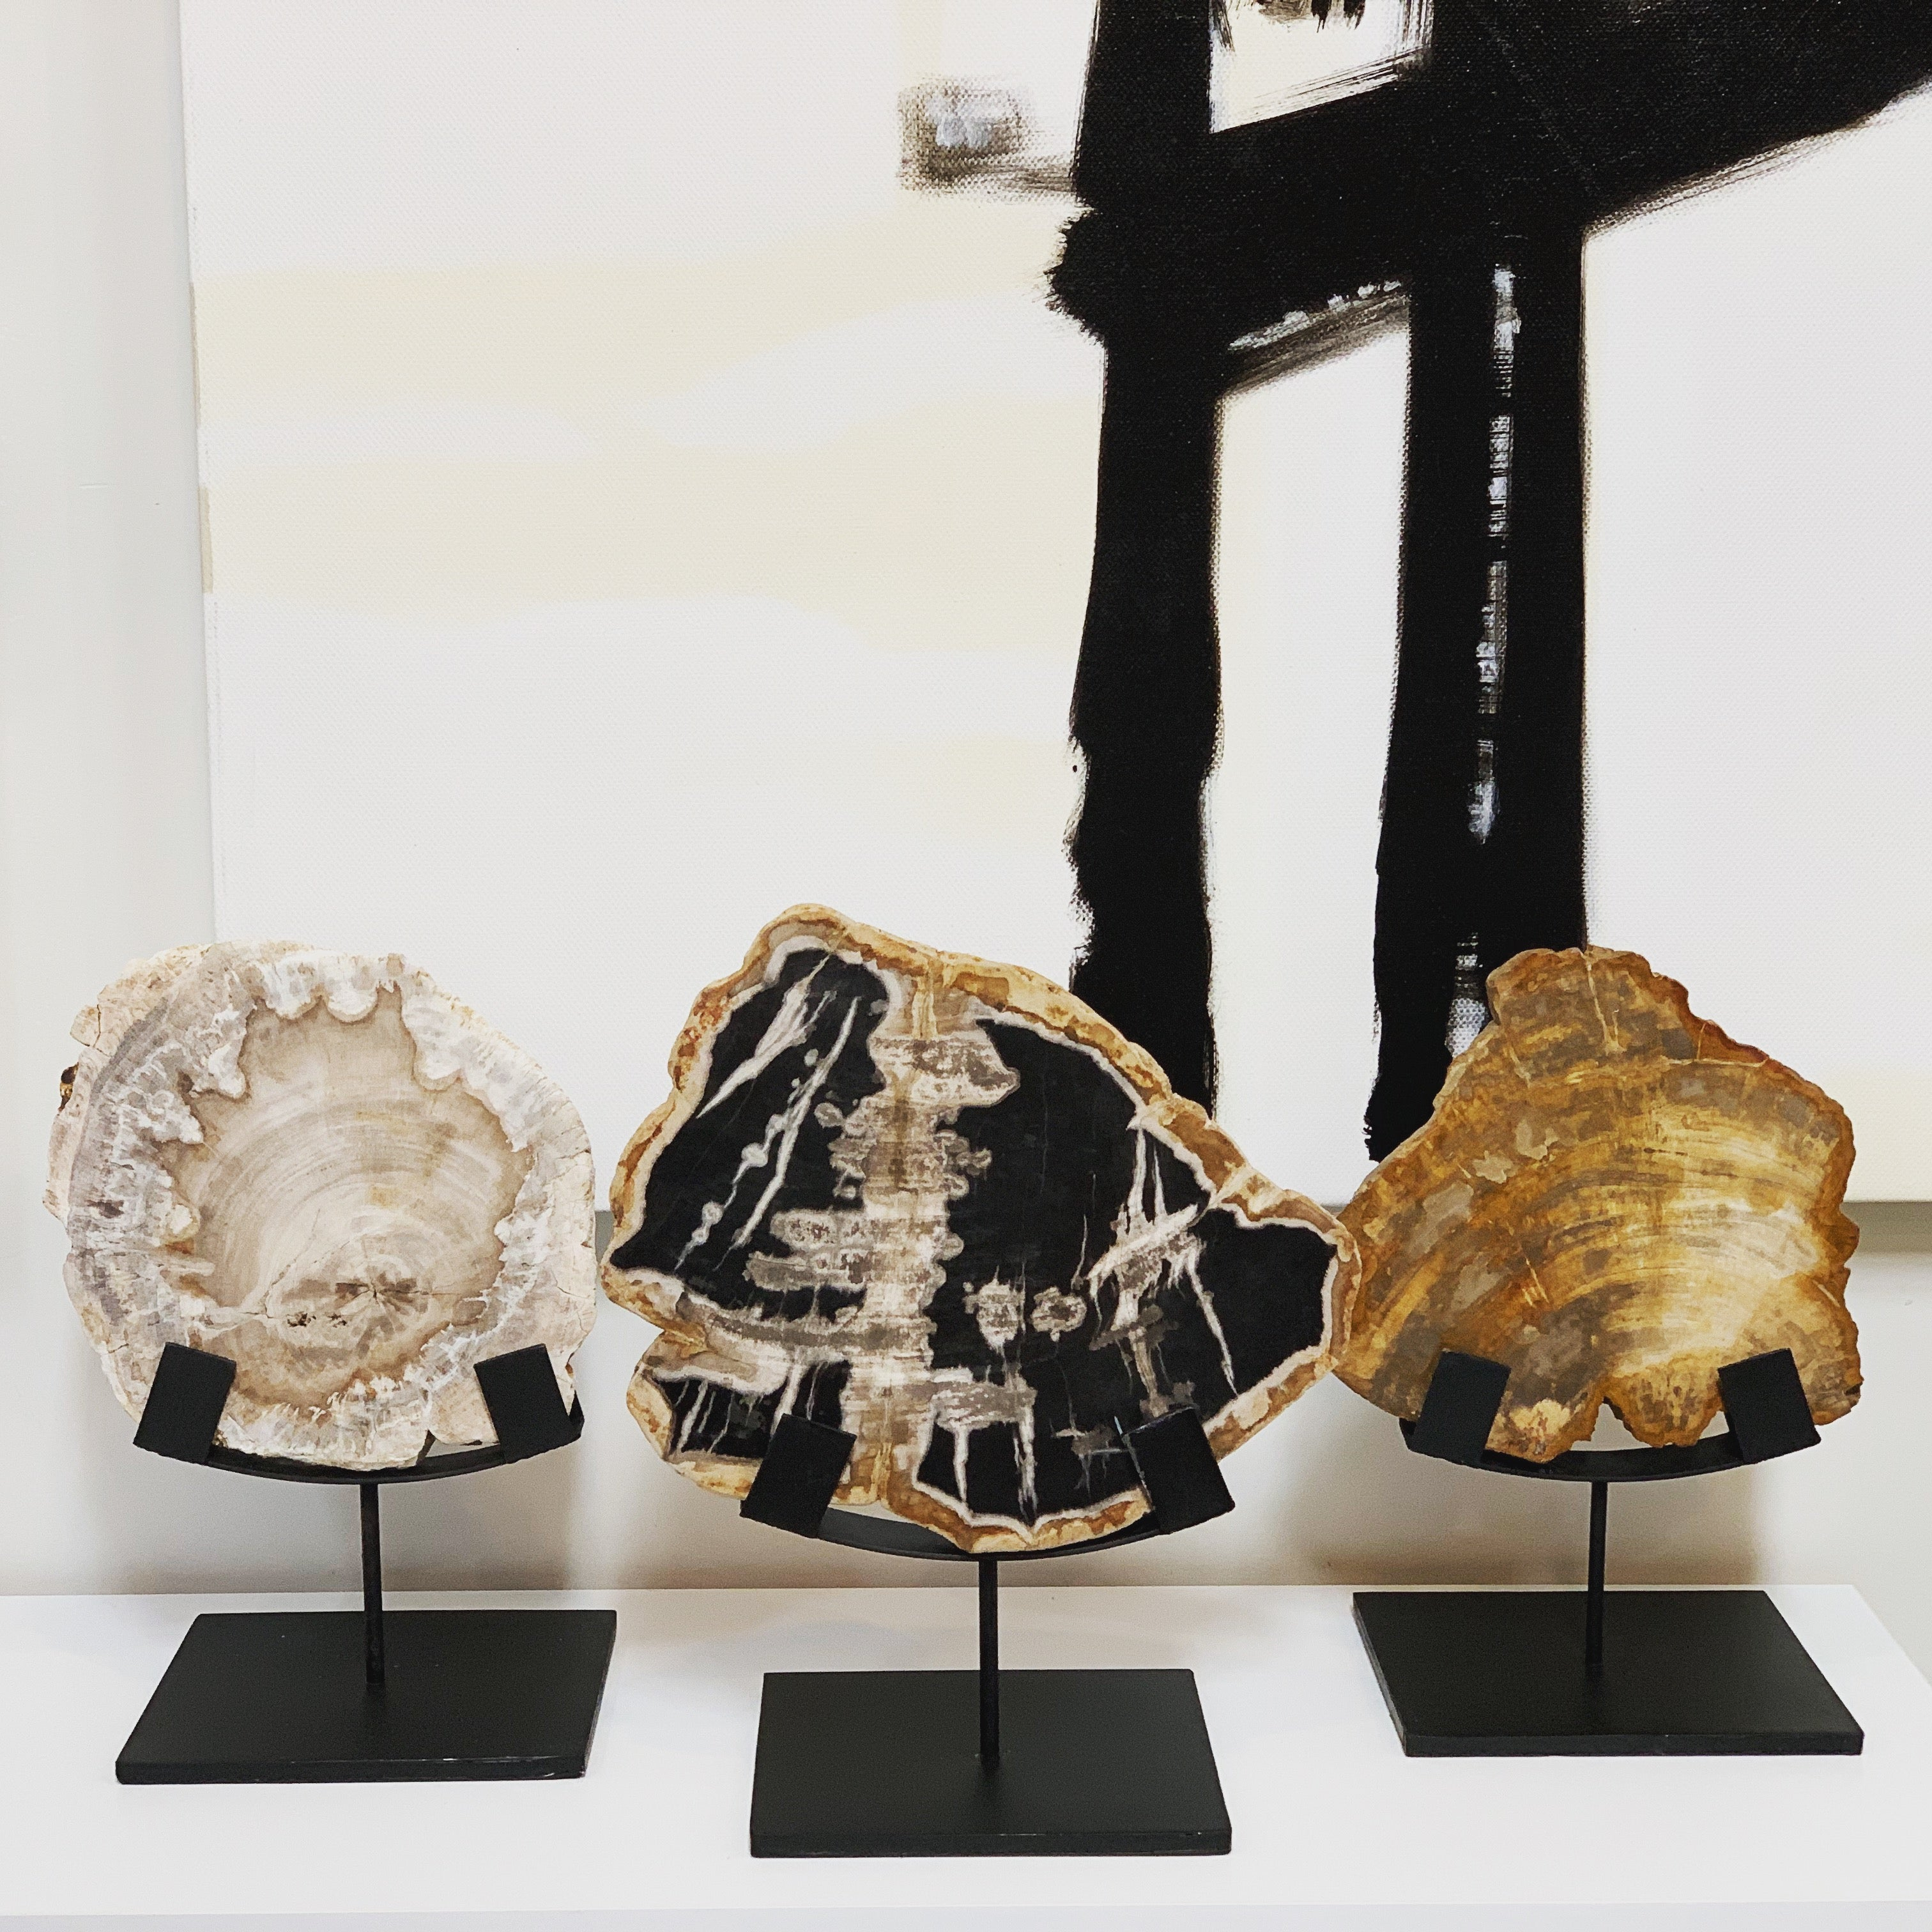 Petrified wood + display stand